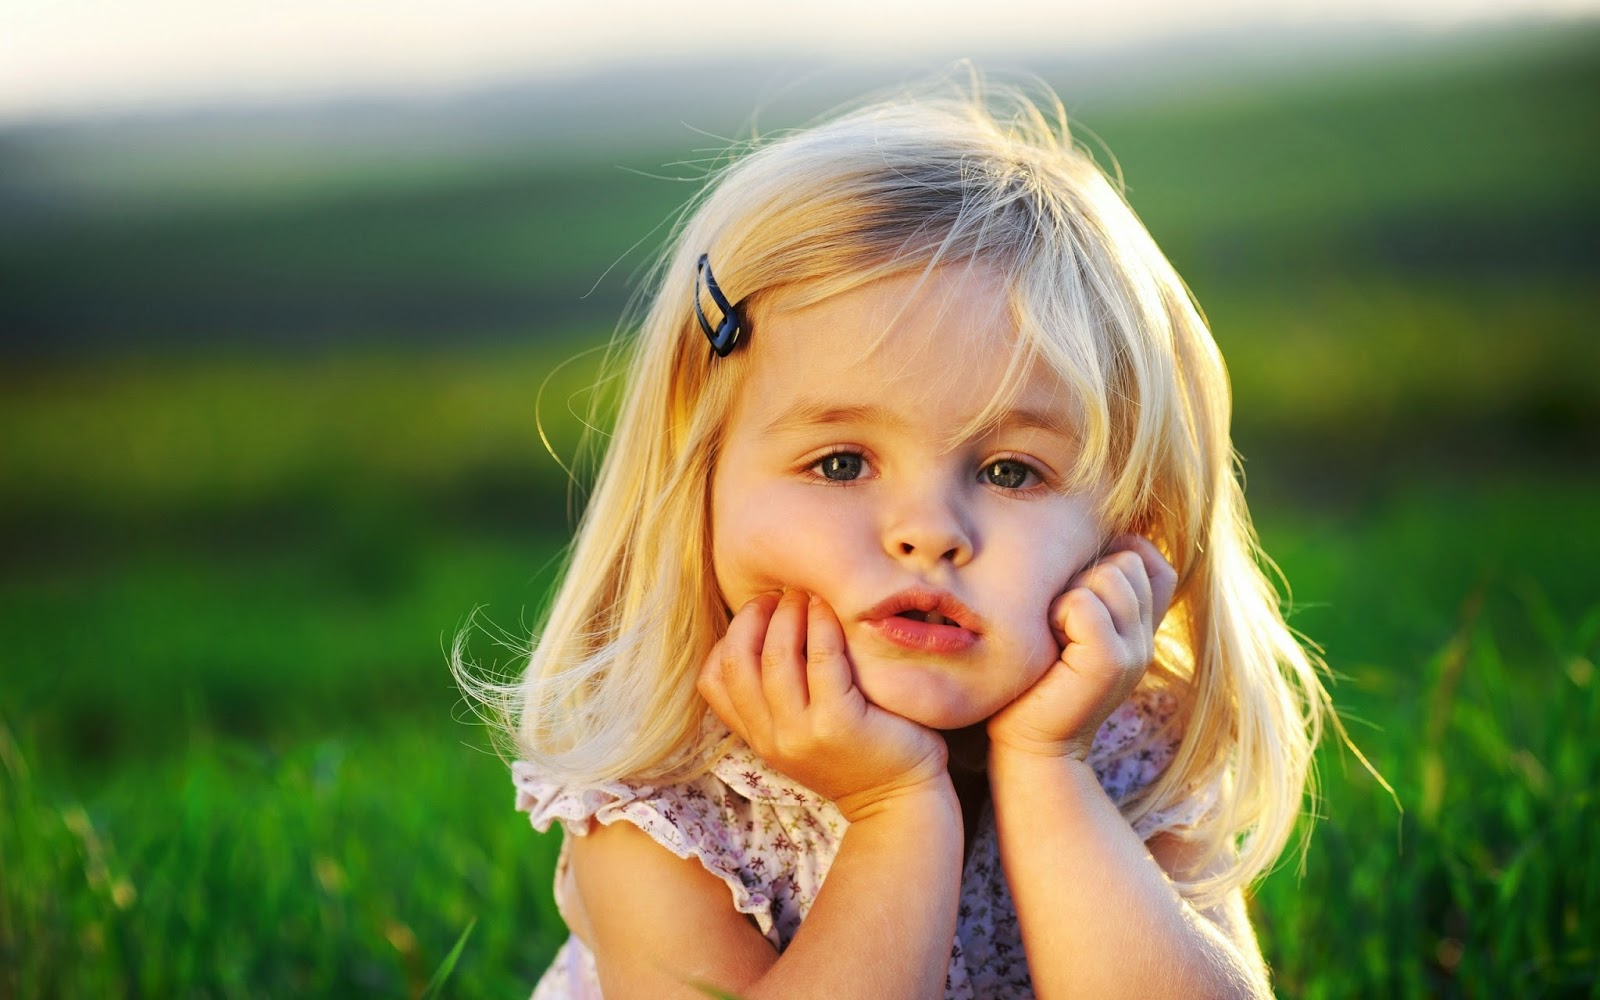 Cute Baby Smile HD Wallpapers Pics Download  HD Walls 1600x1000